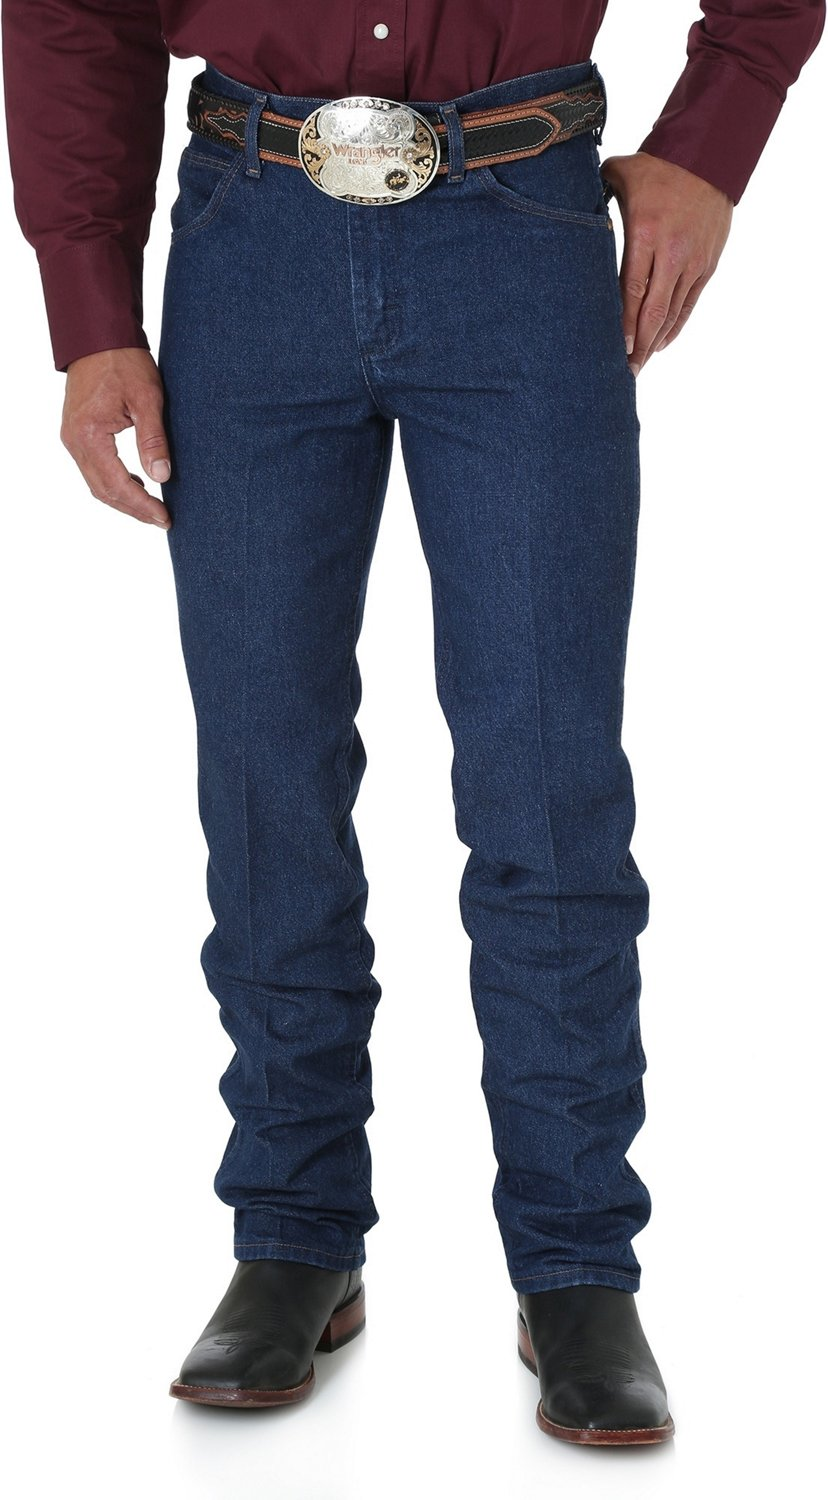 76a68ae9 Display product reviews for Wrangler Men's Premium Performance Cowboy Cut  Slim Fit Jean